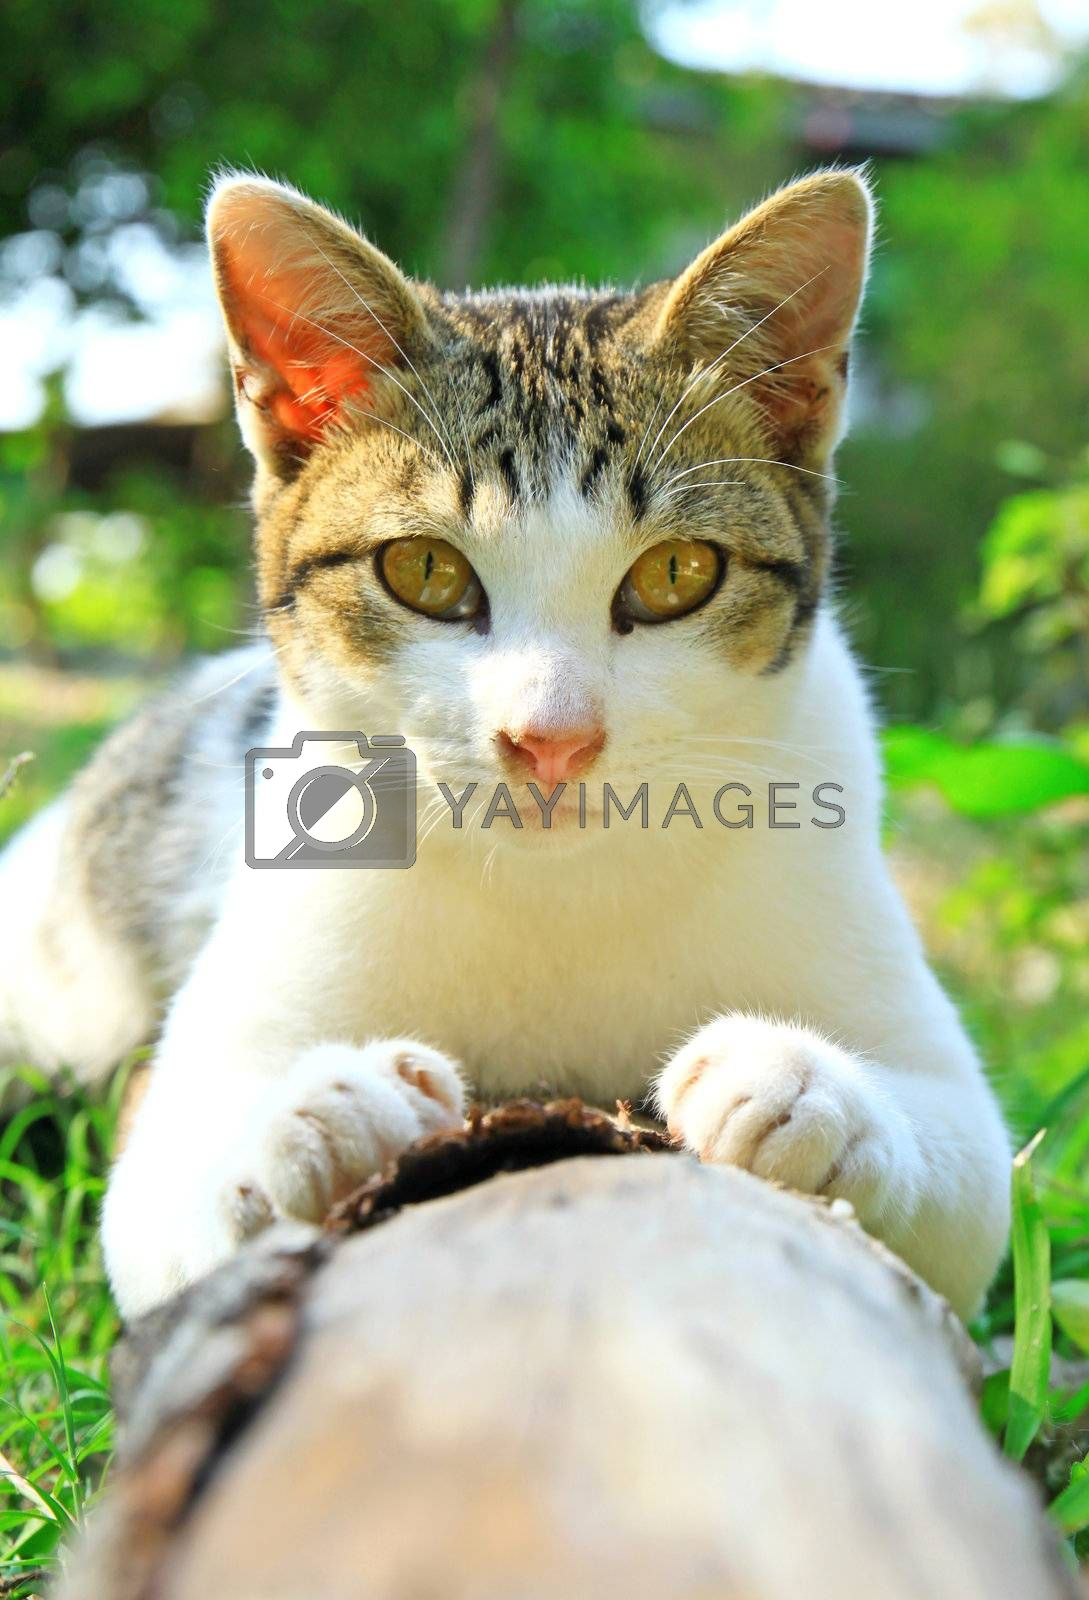 a cute cat lying on log wood in the garden